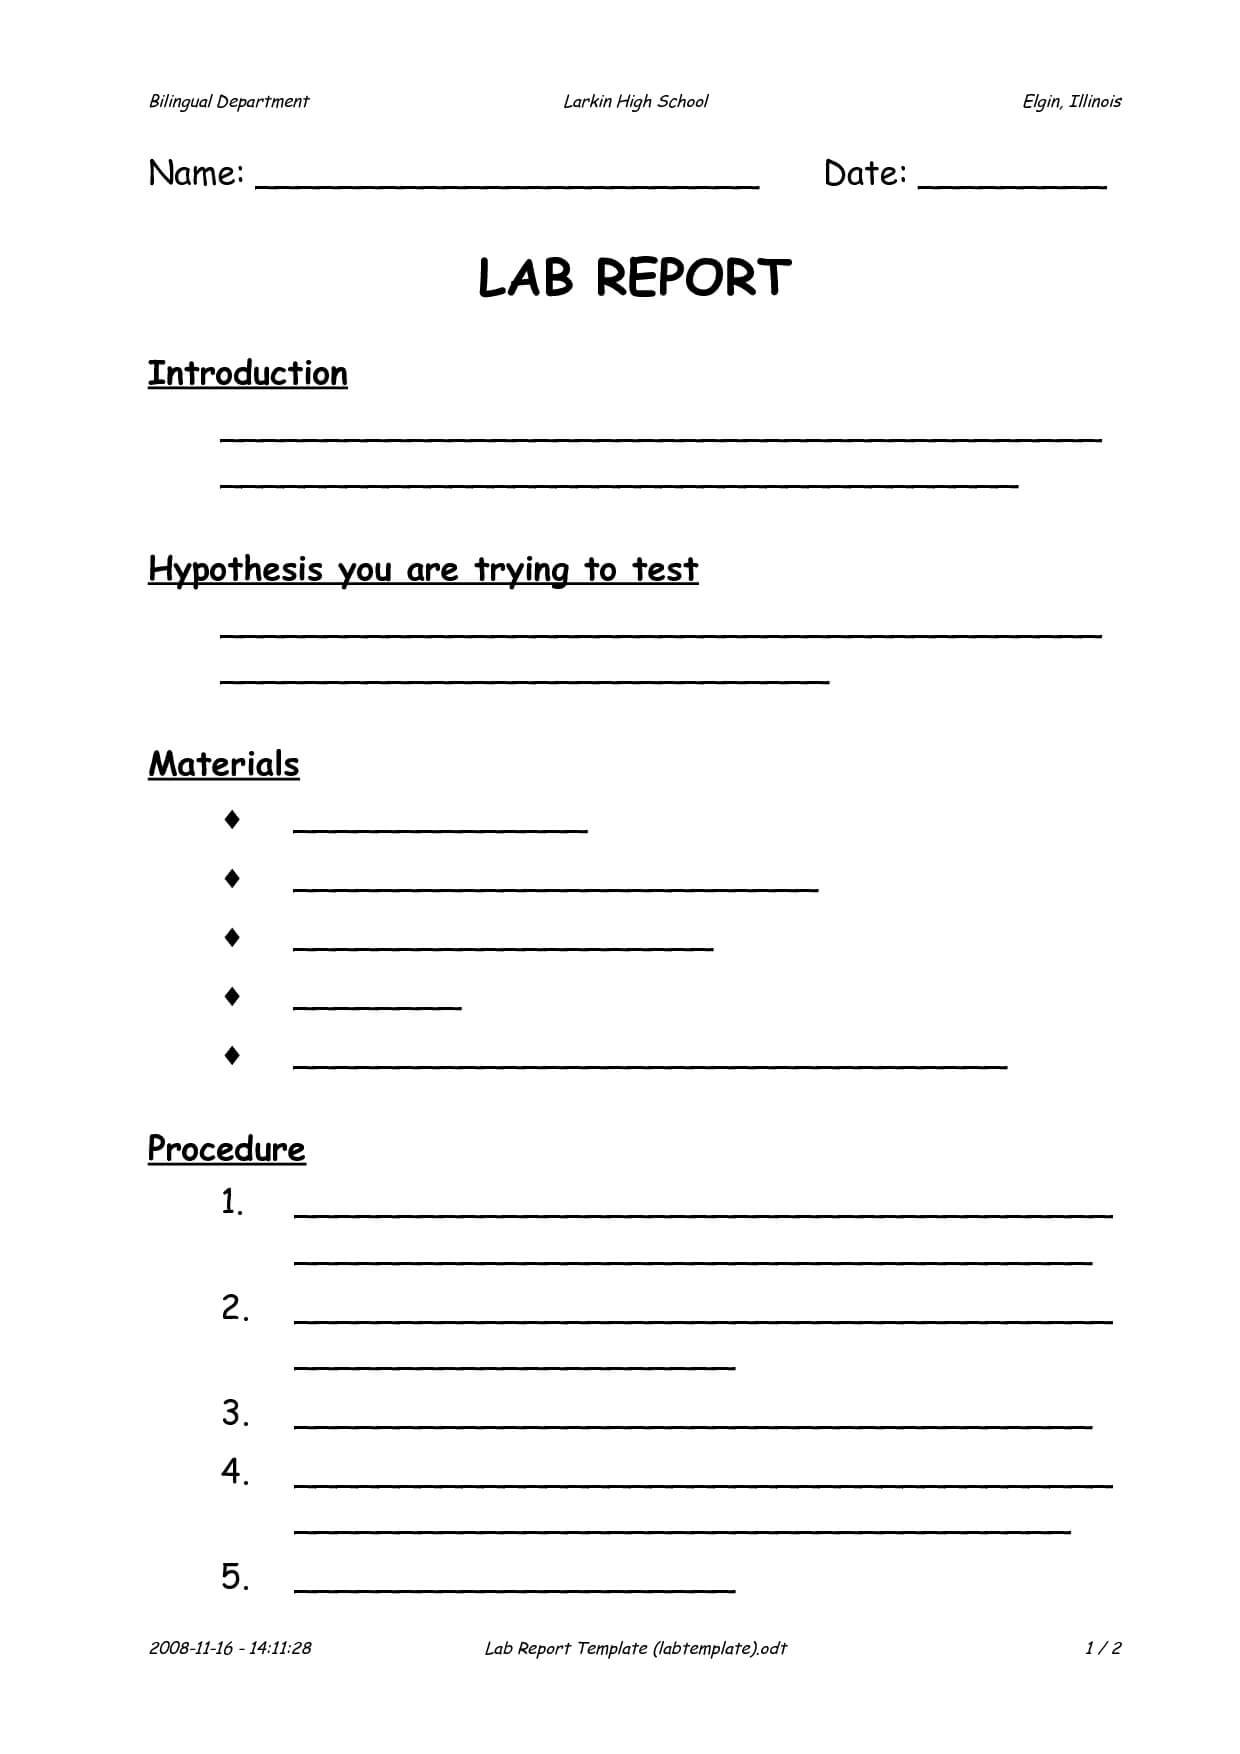 003 Template Ideas Lab Report Middle School Impressive With Regard To Lab Report Template Middle School